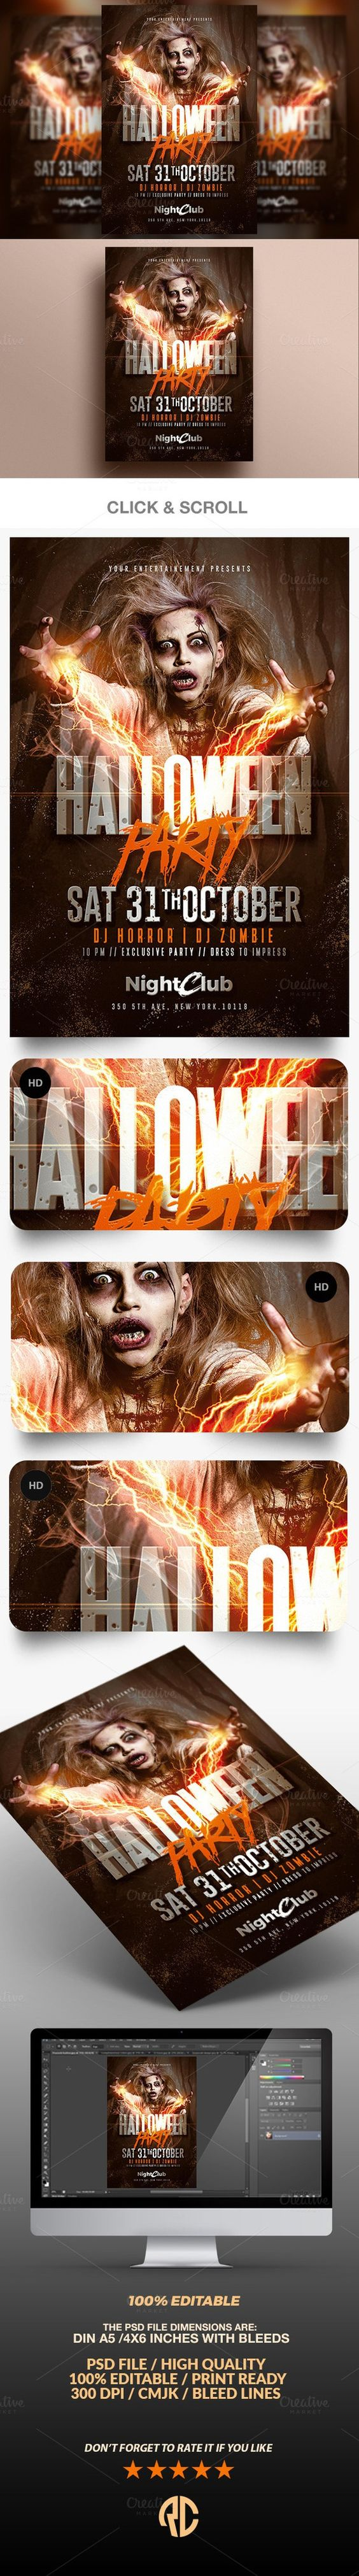 Halloween Party Zombie Flyer – Zombie Flyer Template